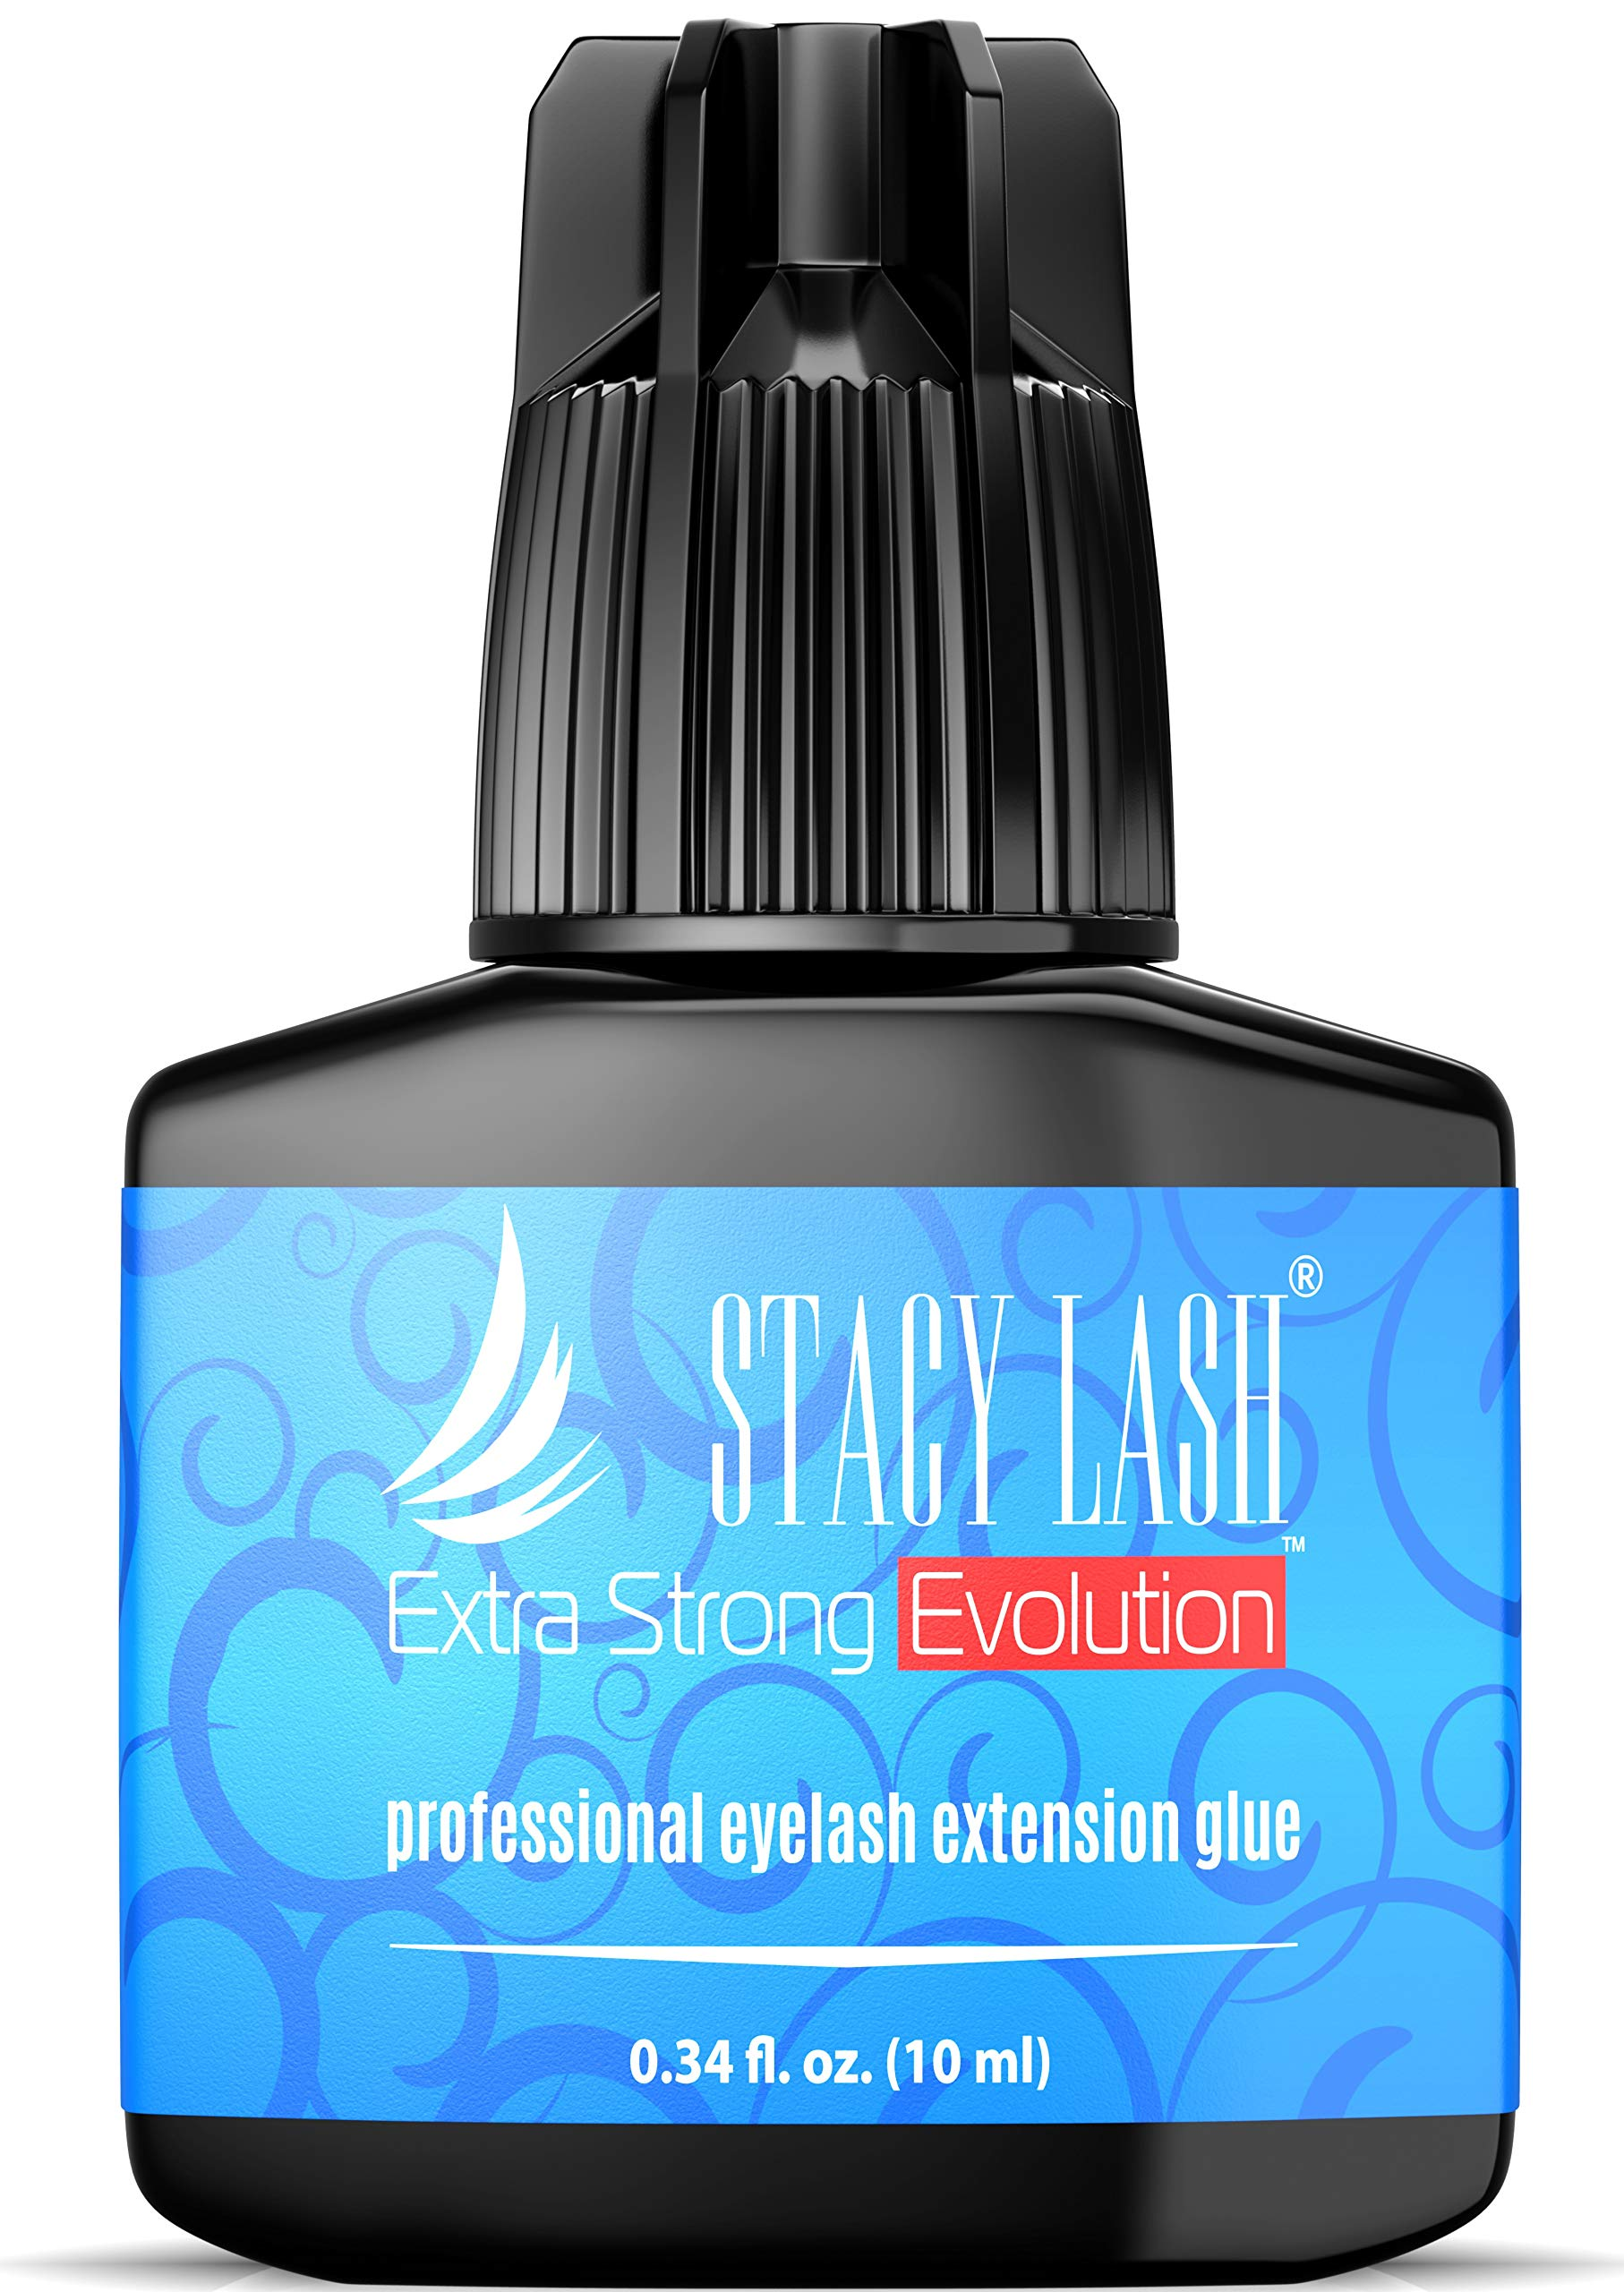 EXTRA STRONG EVOLUTION 10 ml Eyelash Extension Glue Stacy Lash / 1-2 Sec Drying time/Retention - 8 weeks/Maximum Bonding/Professional Use Only Black Adhesive/Semi-Permanent Extensions Supplies by Stacy Lash